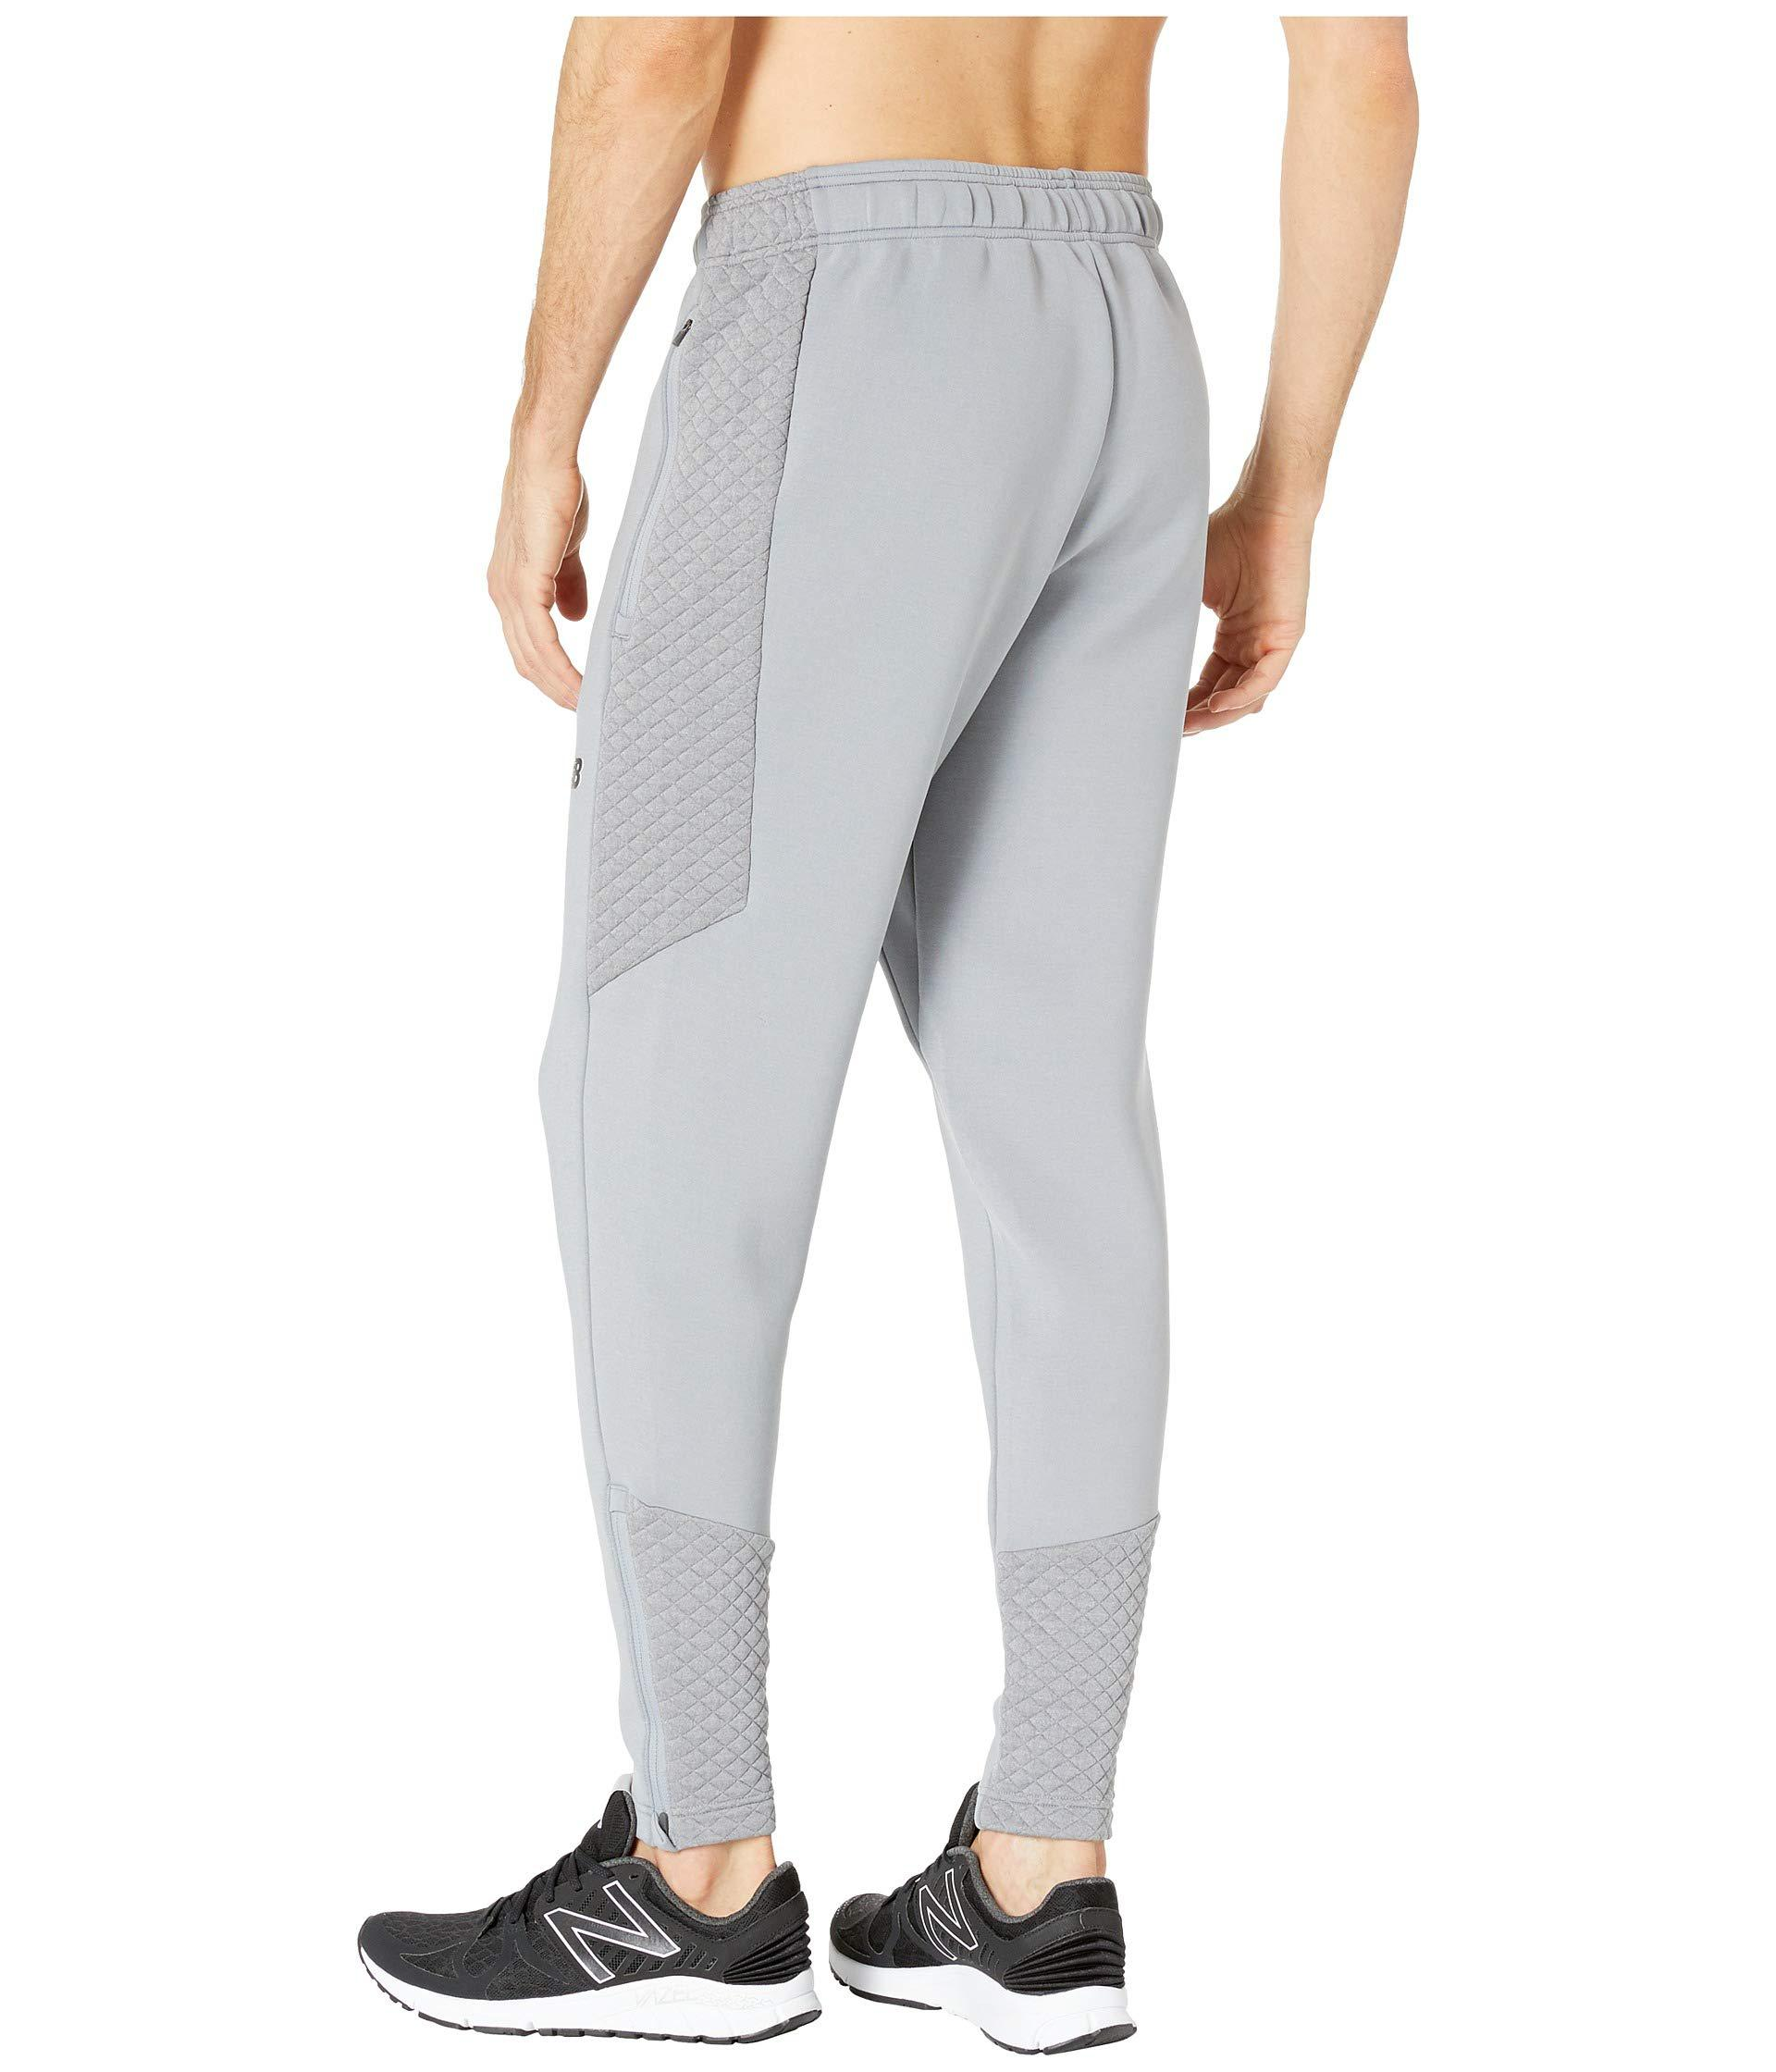 957fe3a2564b3 Men's Gray Nb Heat Loft Pants (athletic Grey) Workout